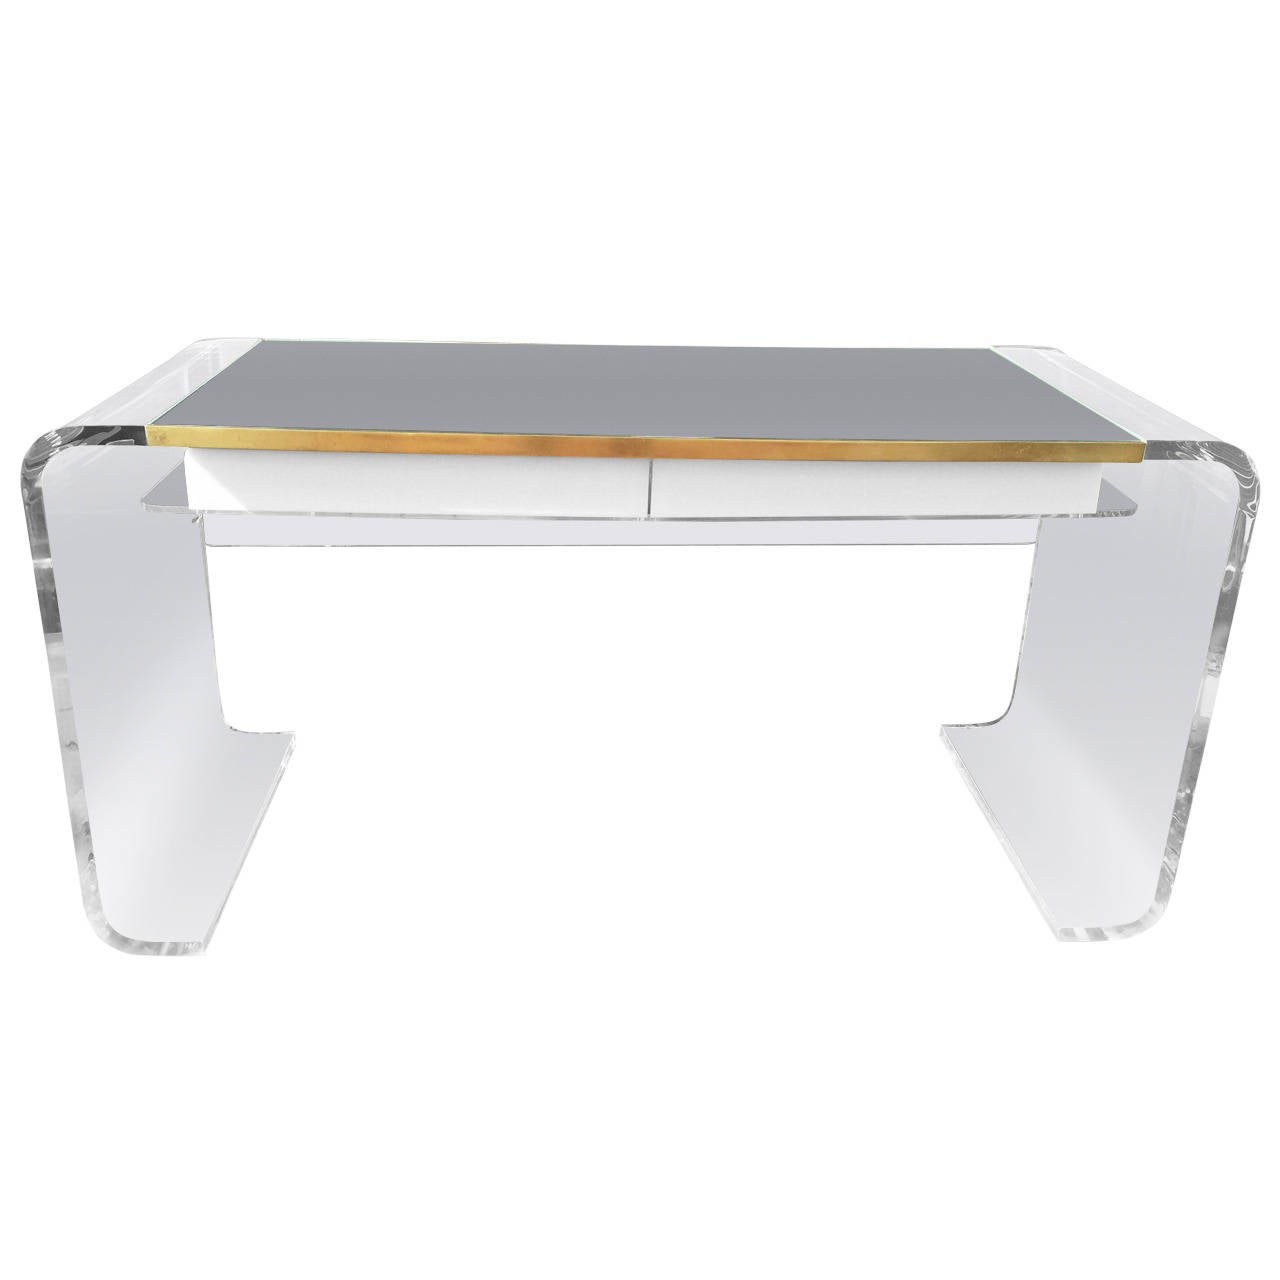 Outrageous vintage lucite waterfall desk at stdibs